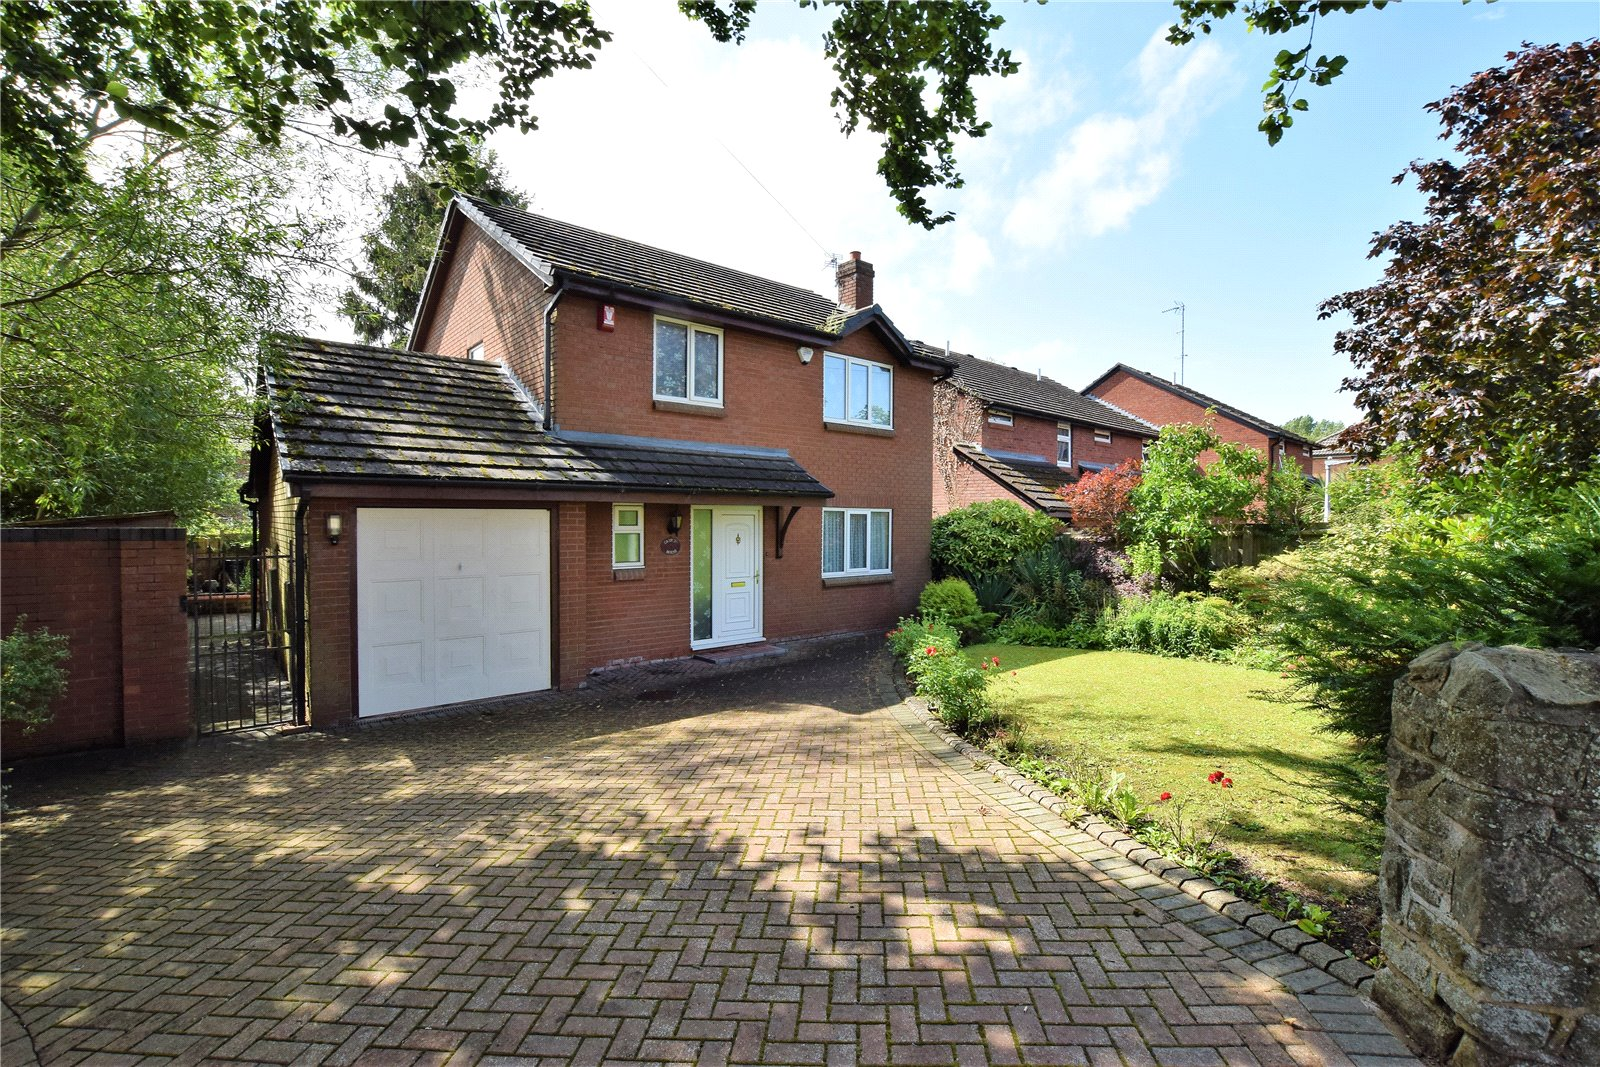 Carford House, Priorslee Road, Snedshill, Telford, TF2